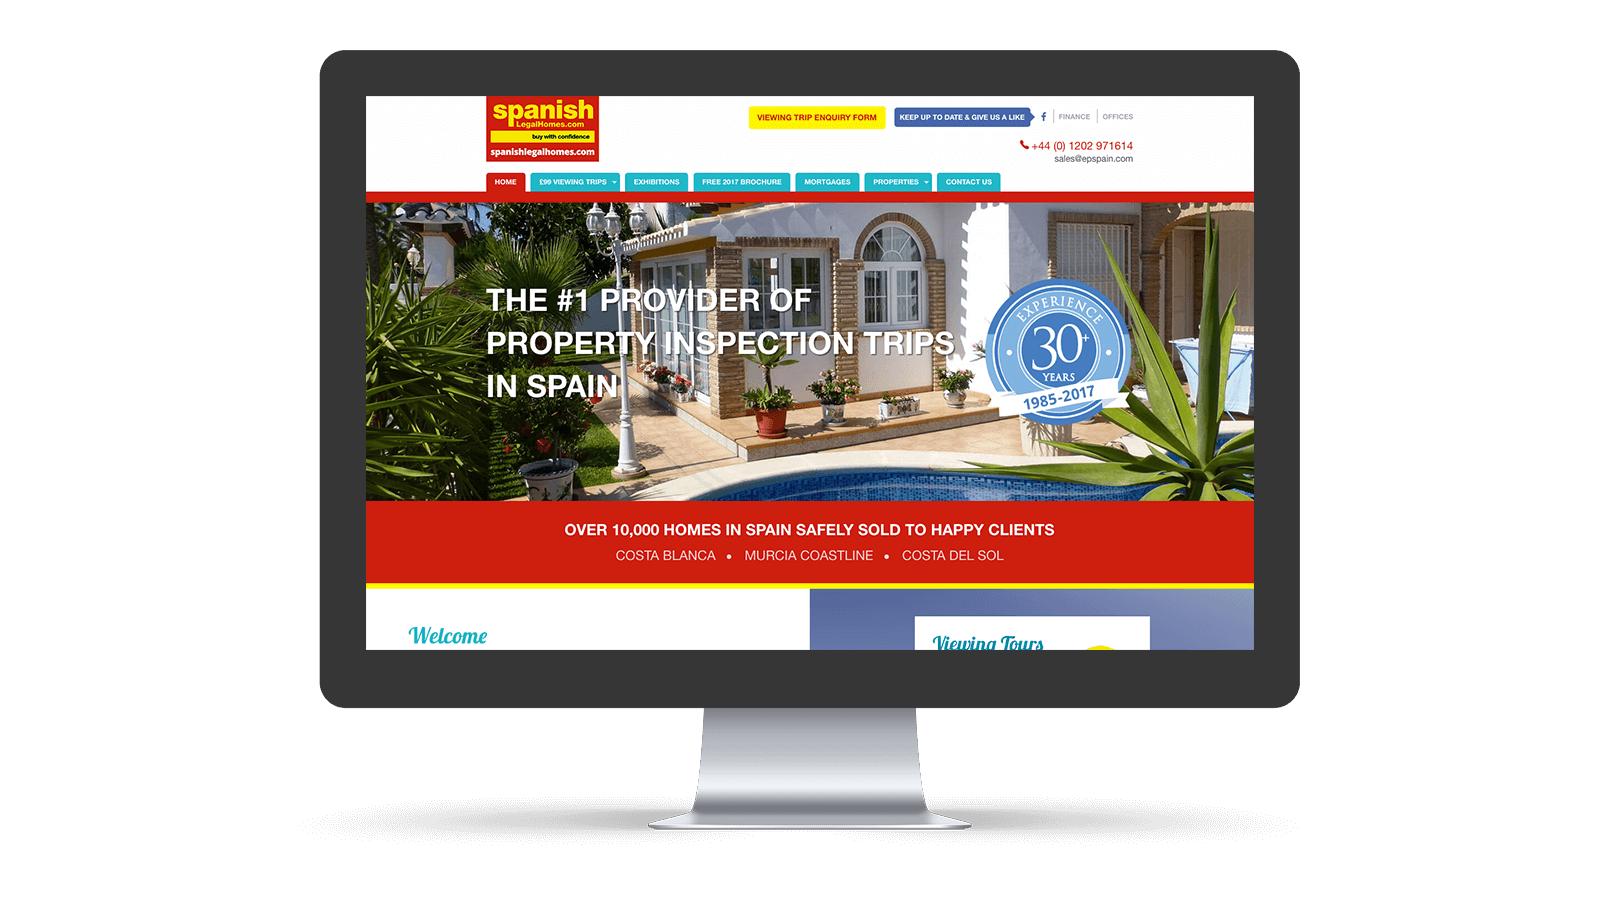 Spanish Legal Home website home page